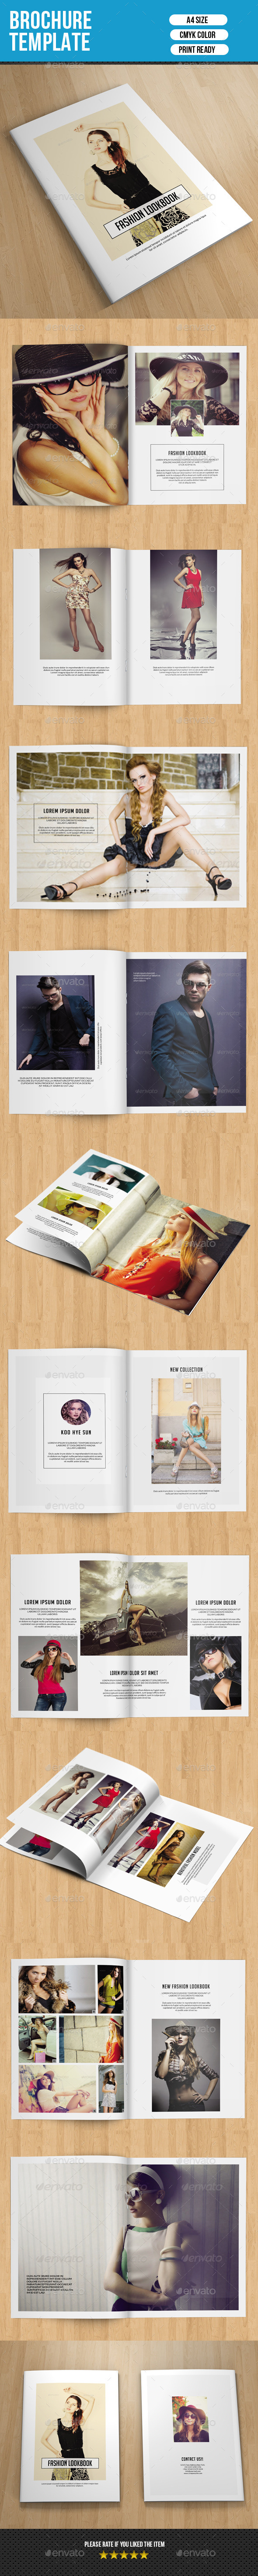 GraphicRiver Fashion Lookbook-V216 10655434